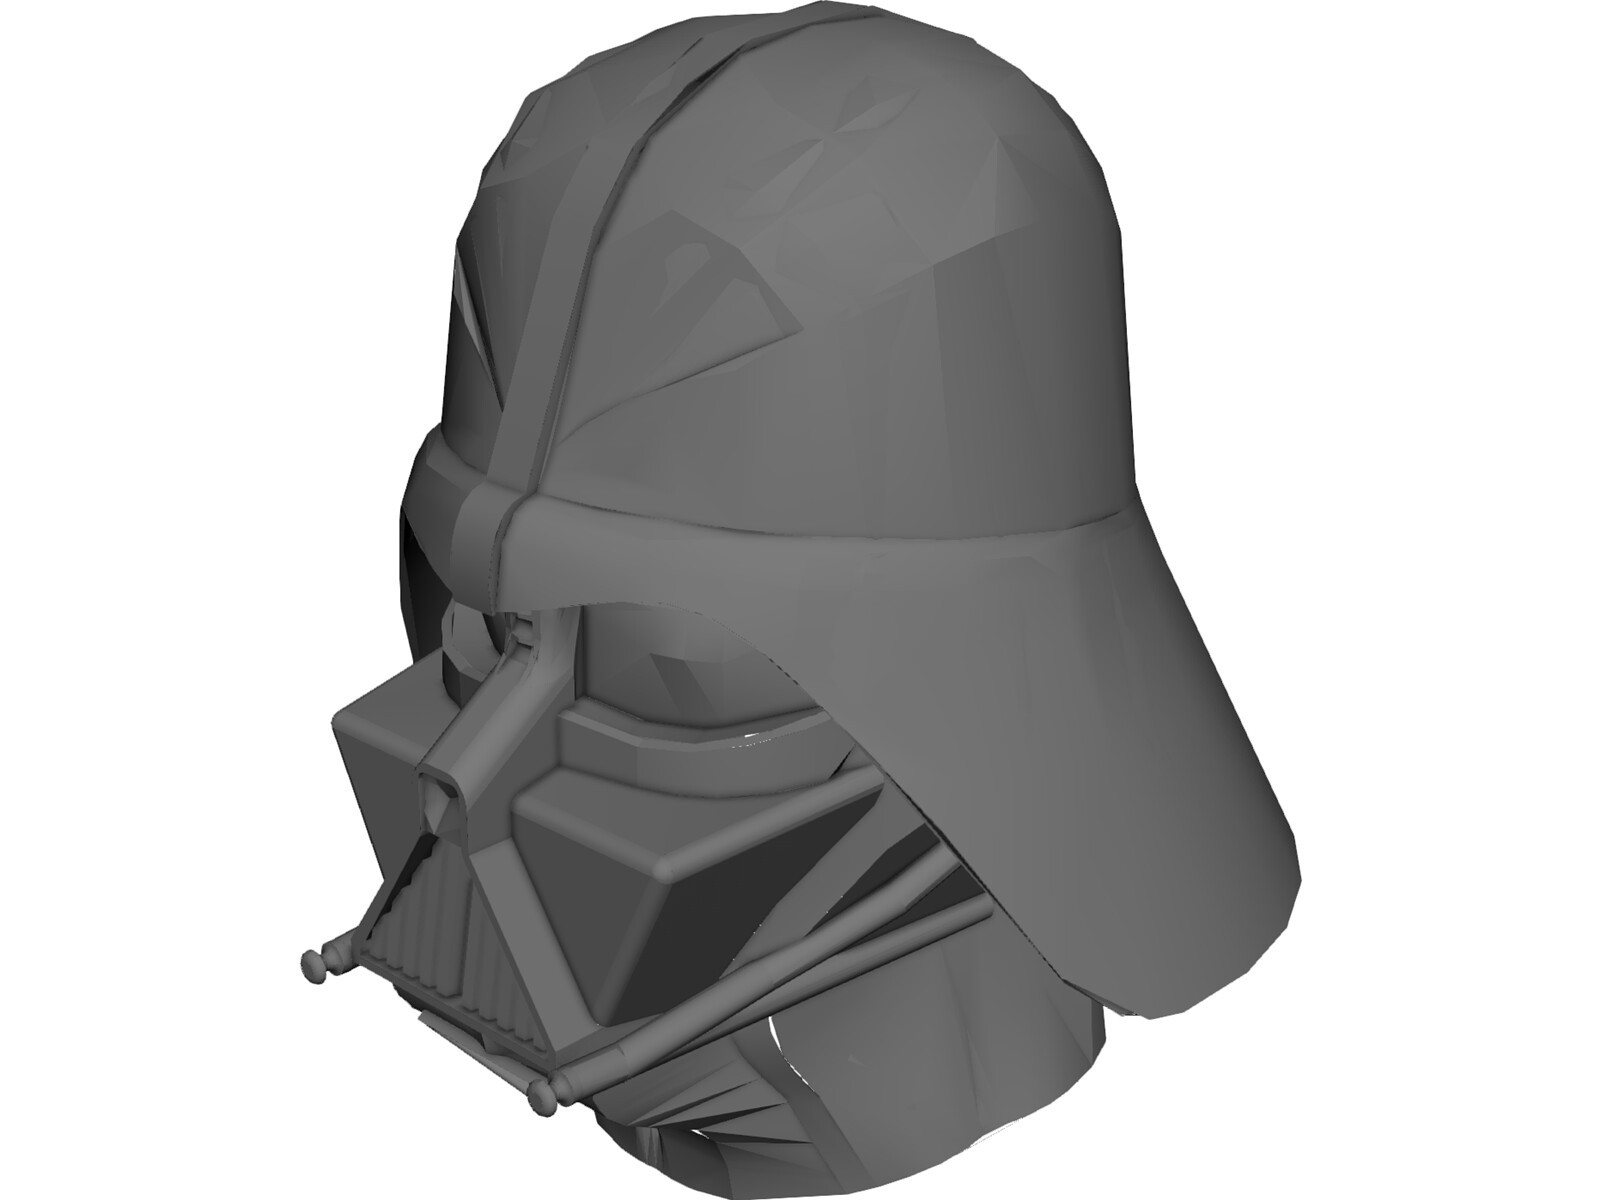 star wars darth vader mask 3d cad model 3d cad browser. Black Bedroom Furniture Sets. Home Design Ideas